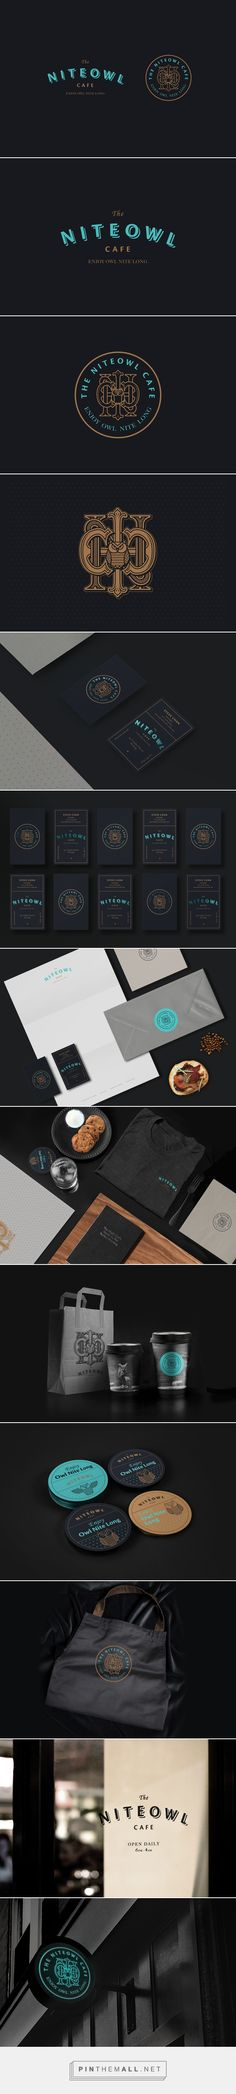 The Niteowl Cafe on Behance - created via https://pinthemall.net